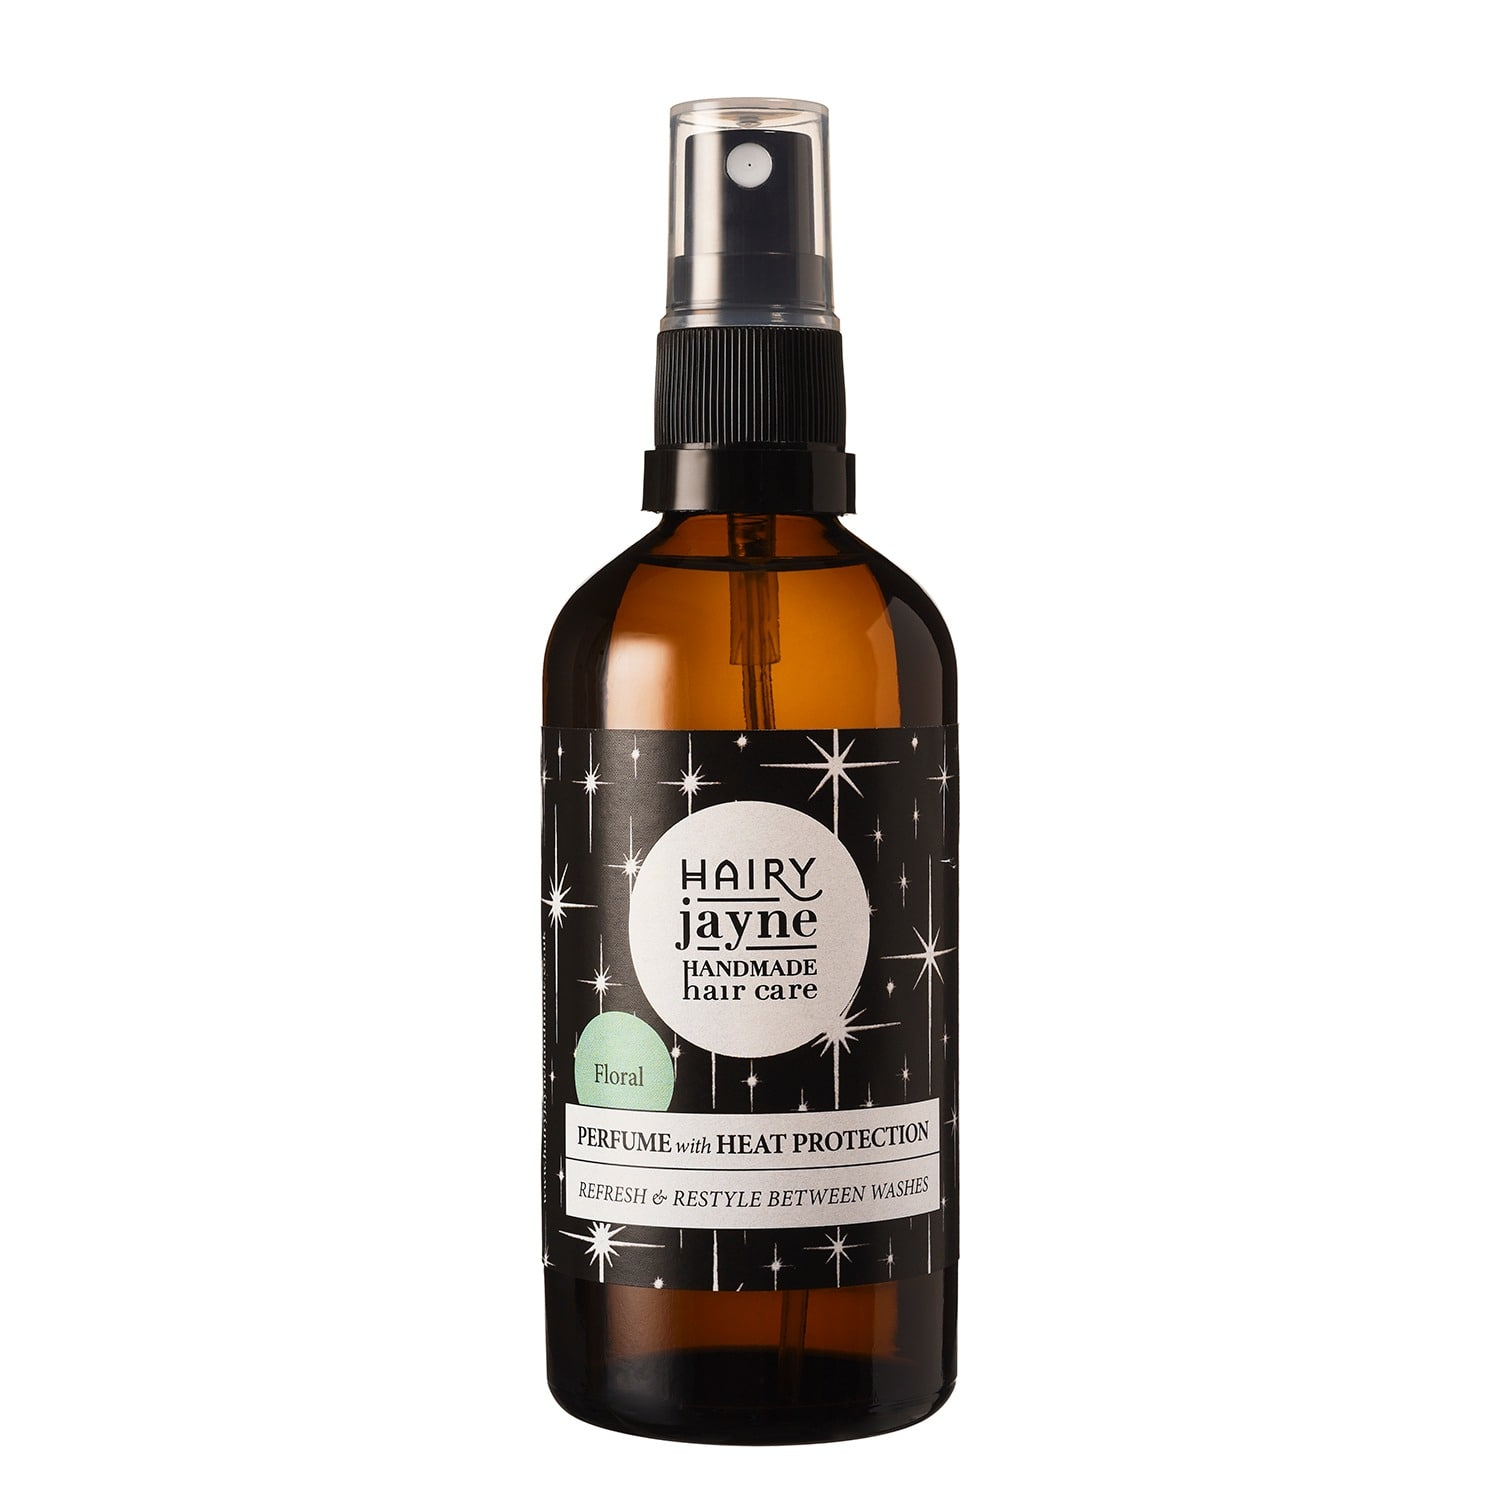 Hairy Jayne - Floral Hair Perfume With Heat Protection